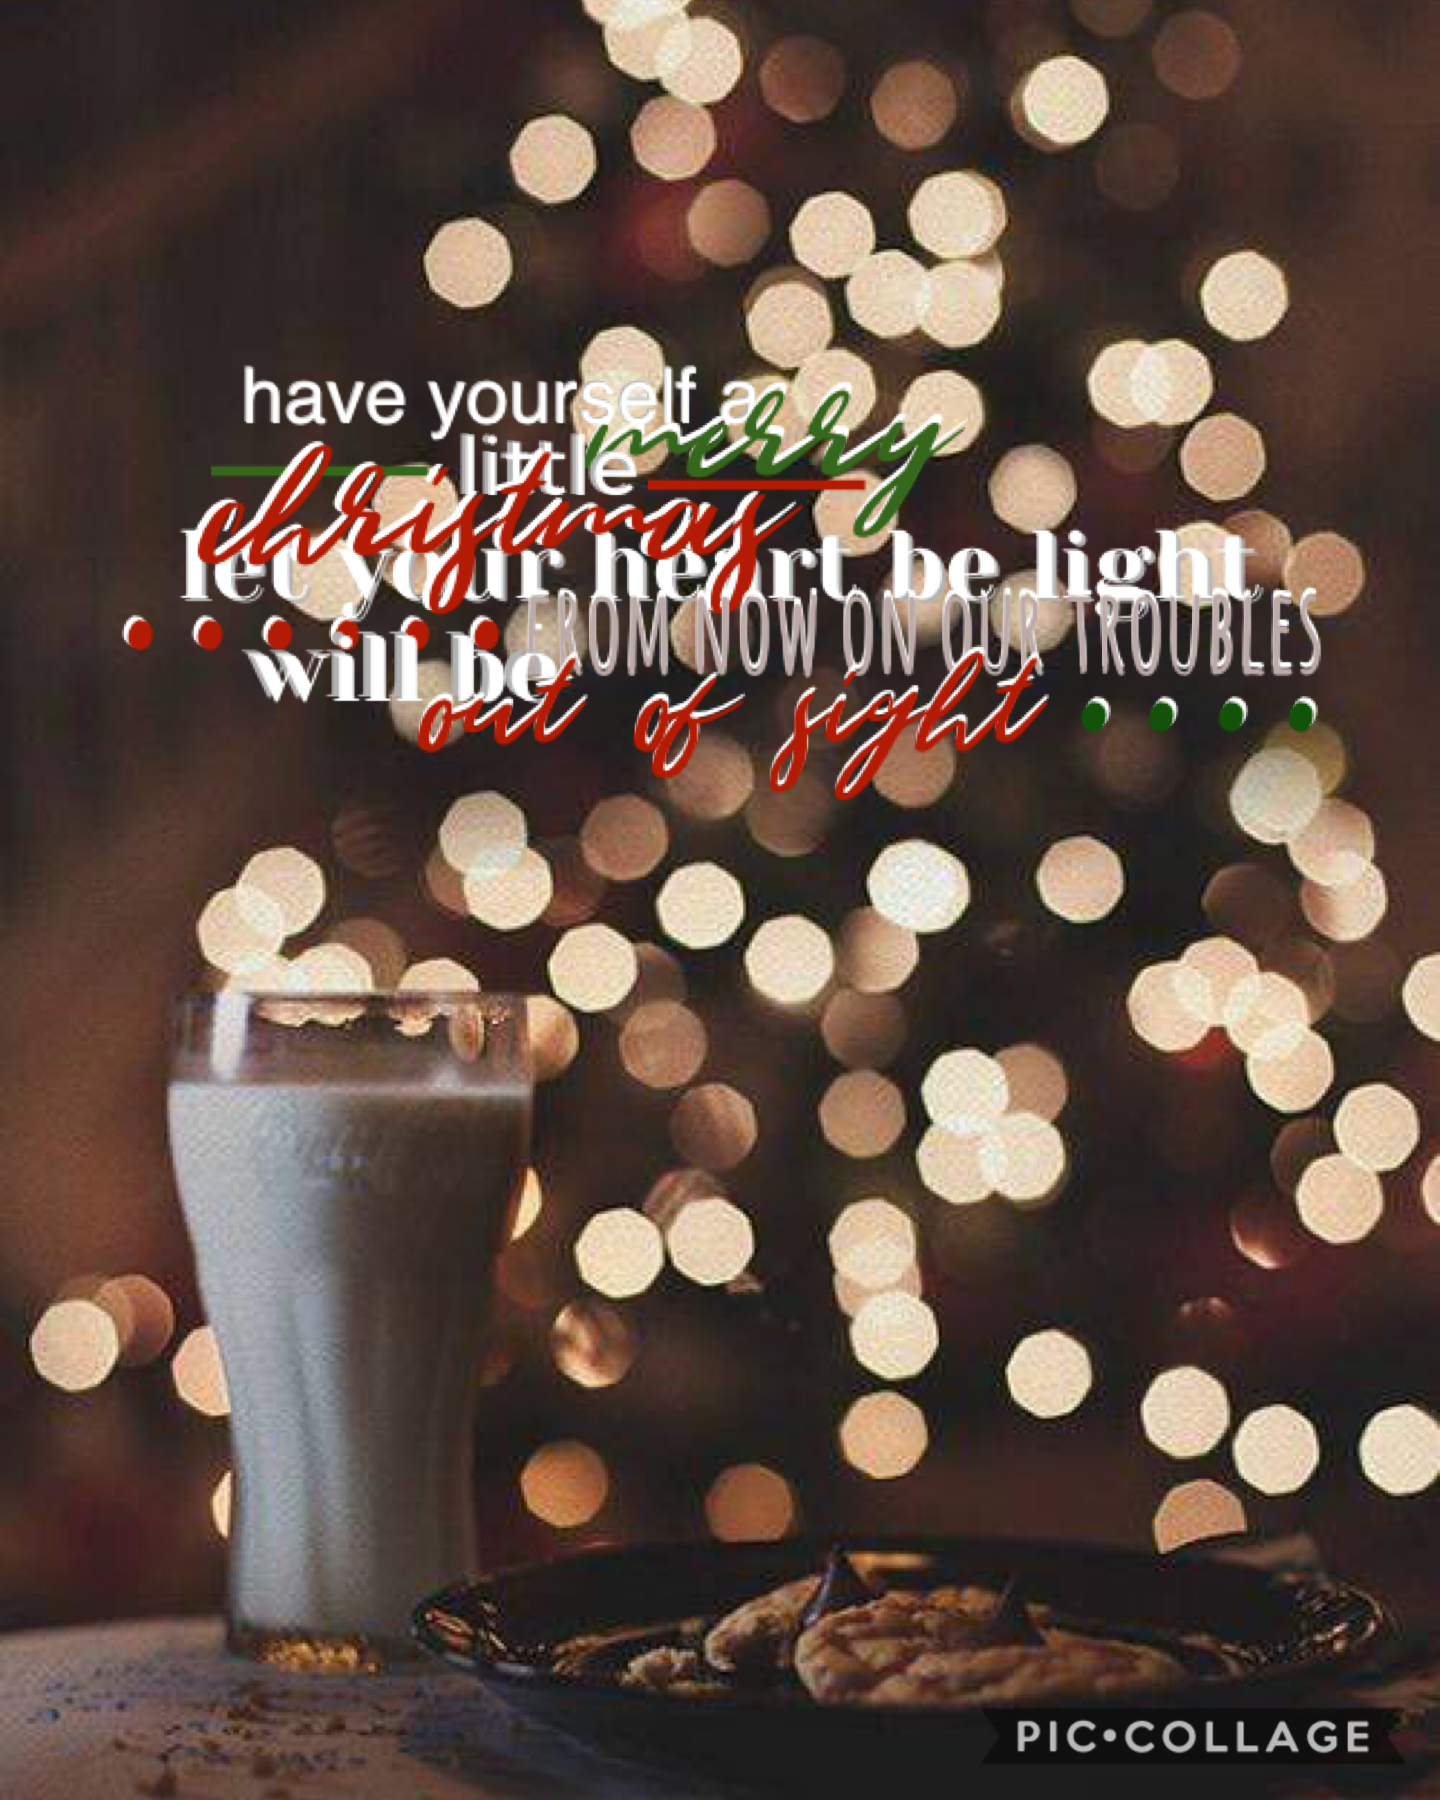 TAPPPPP 🎄🎁 MERRY CHRISTMAS EVEEEEEE i'm posting today cause i prob won't post tmrw lol what does everyone want for christmas? SOTD: have yourself a merry little christmas BY michael bublé